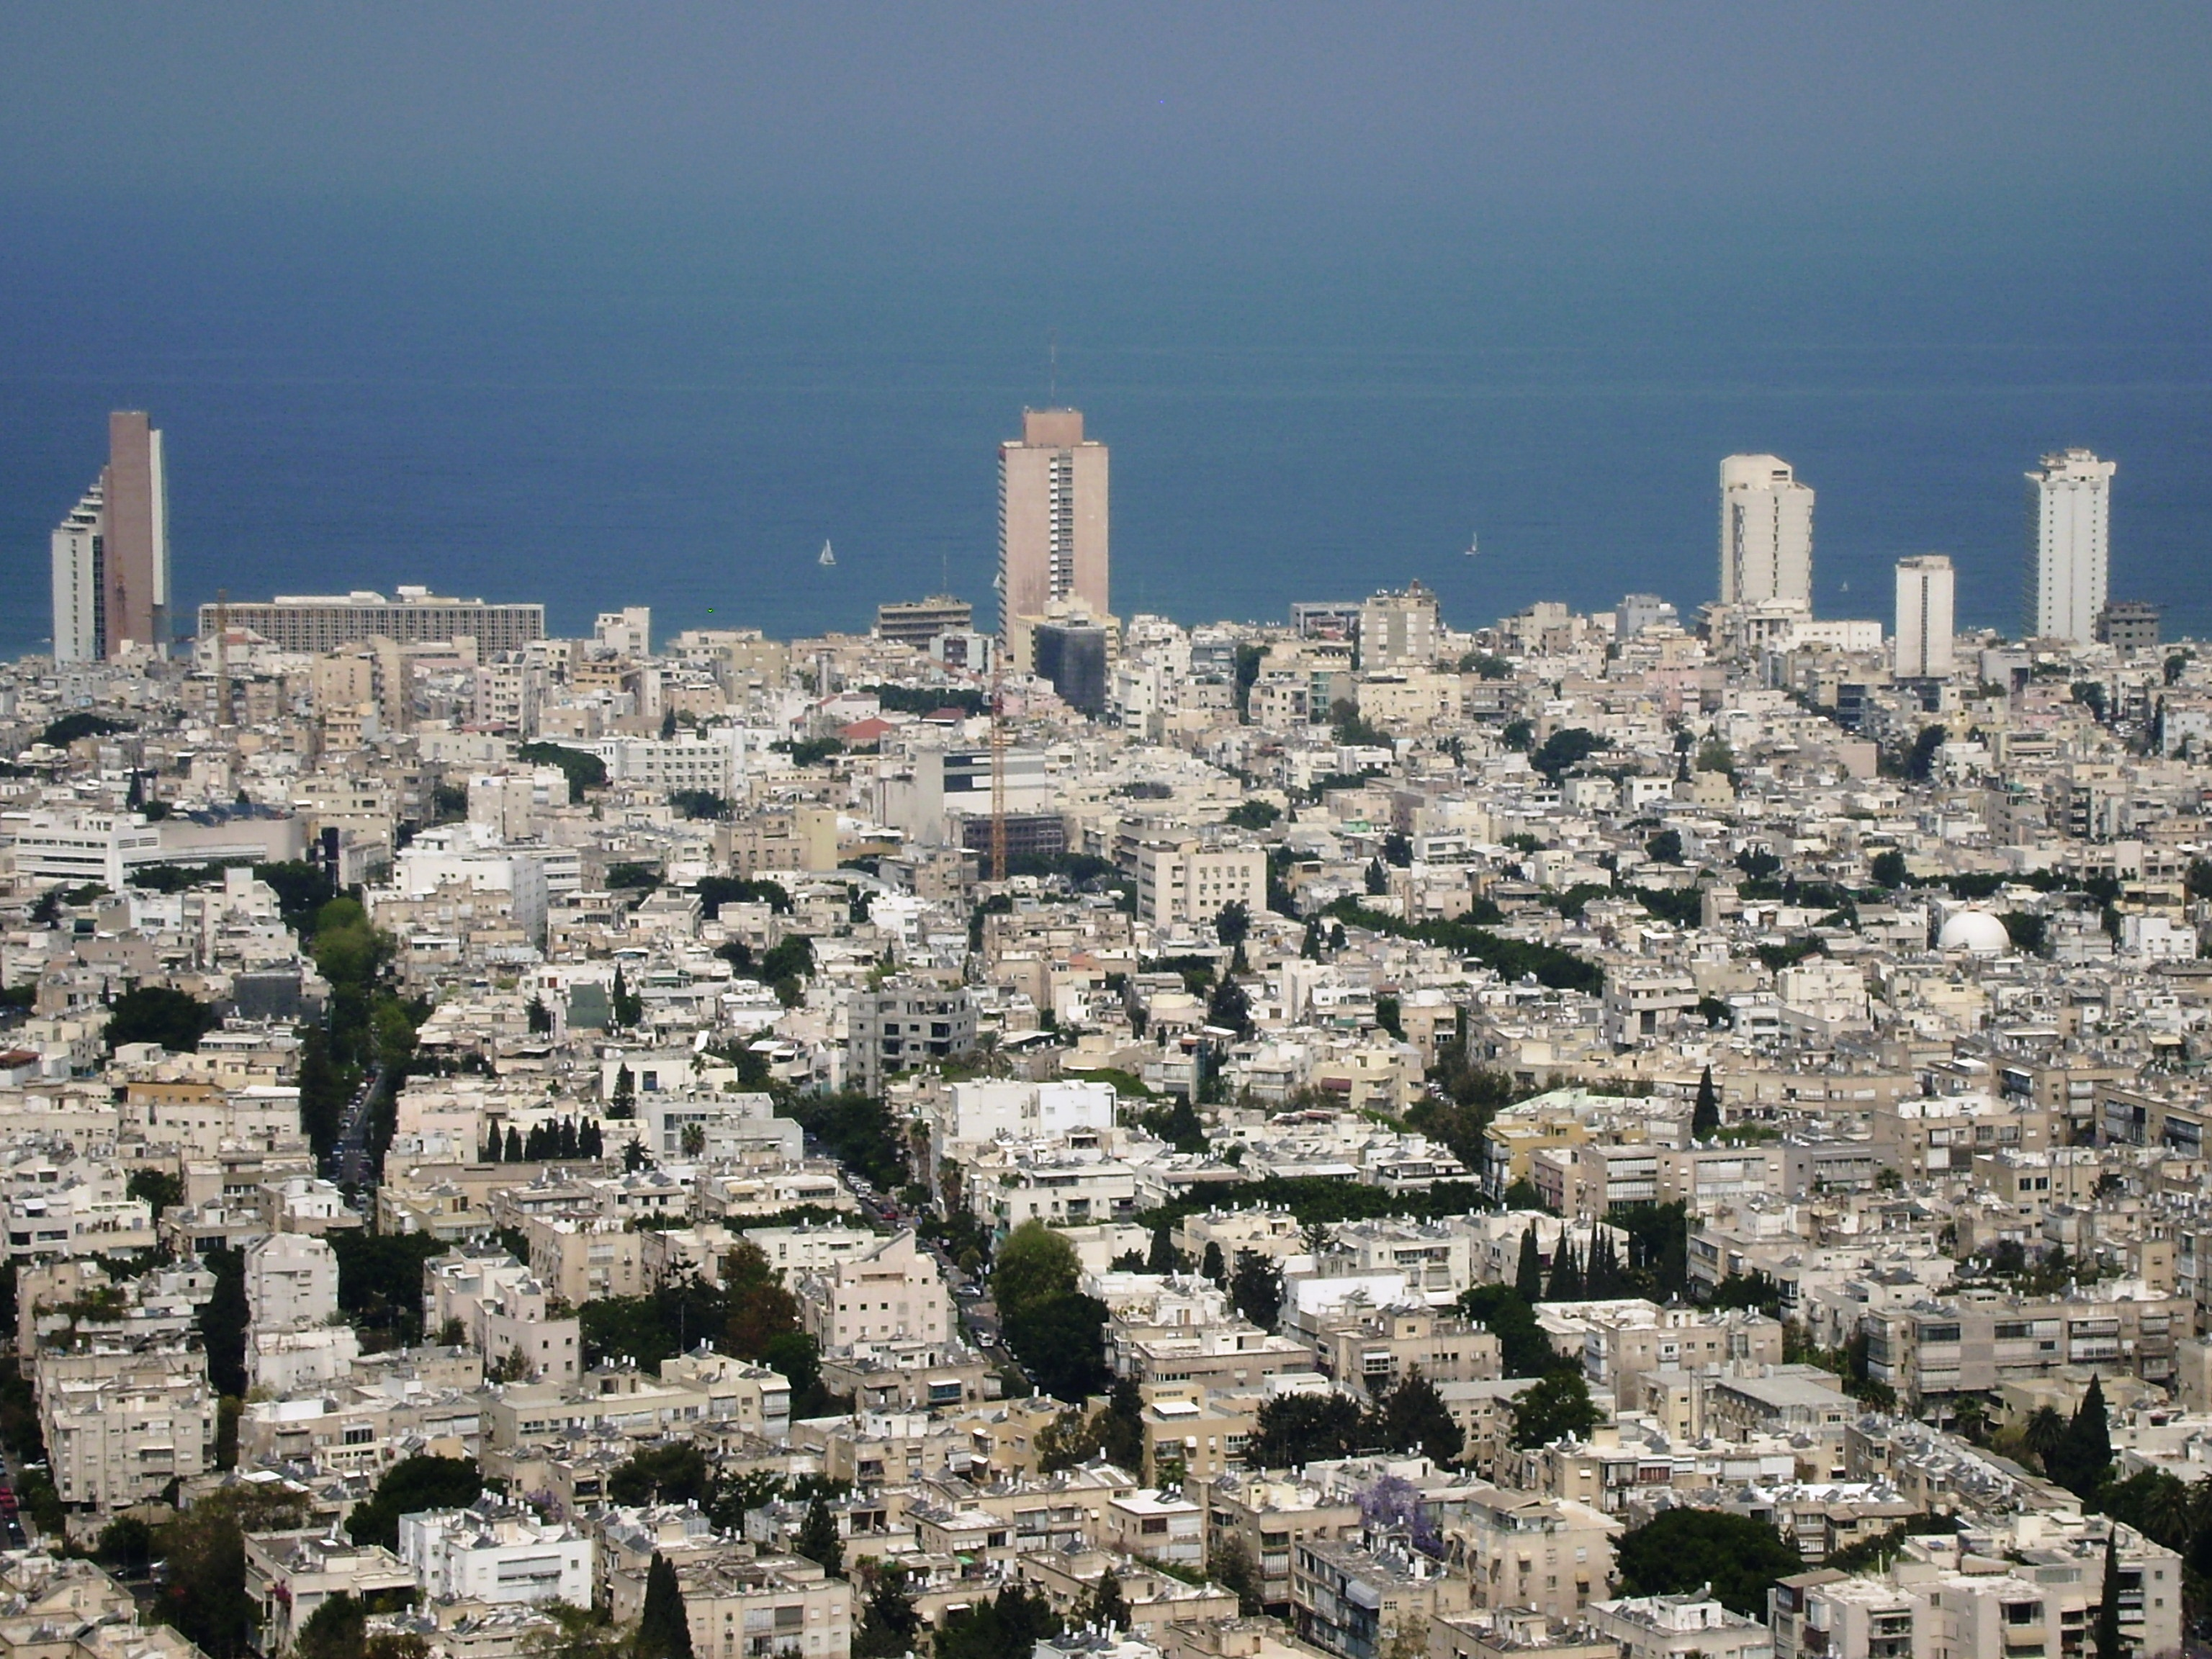 File:Tel-Aviv-100.JPG - Wikimedia Commons